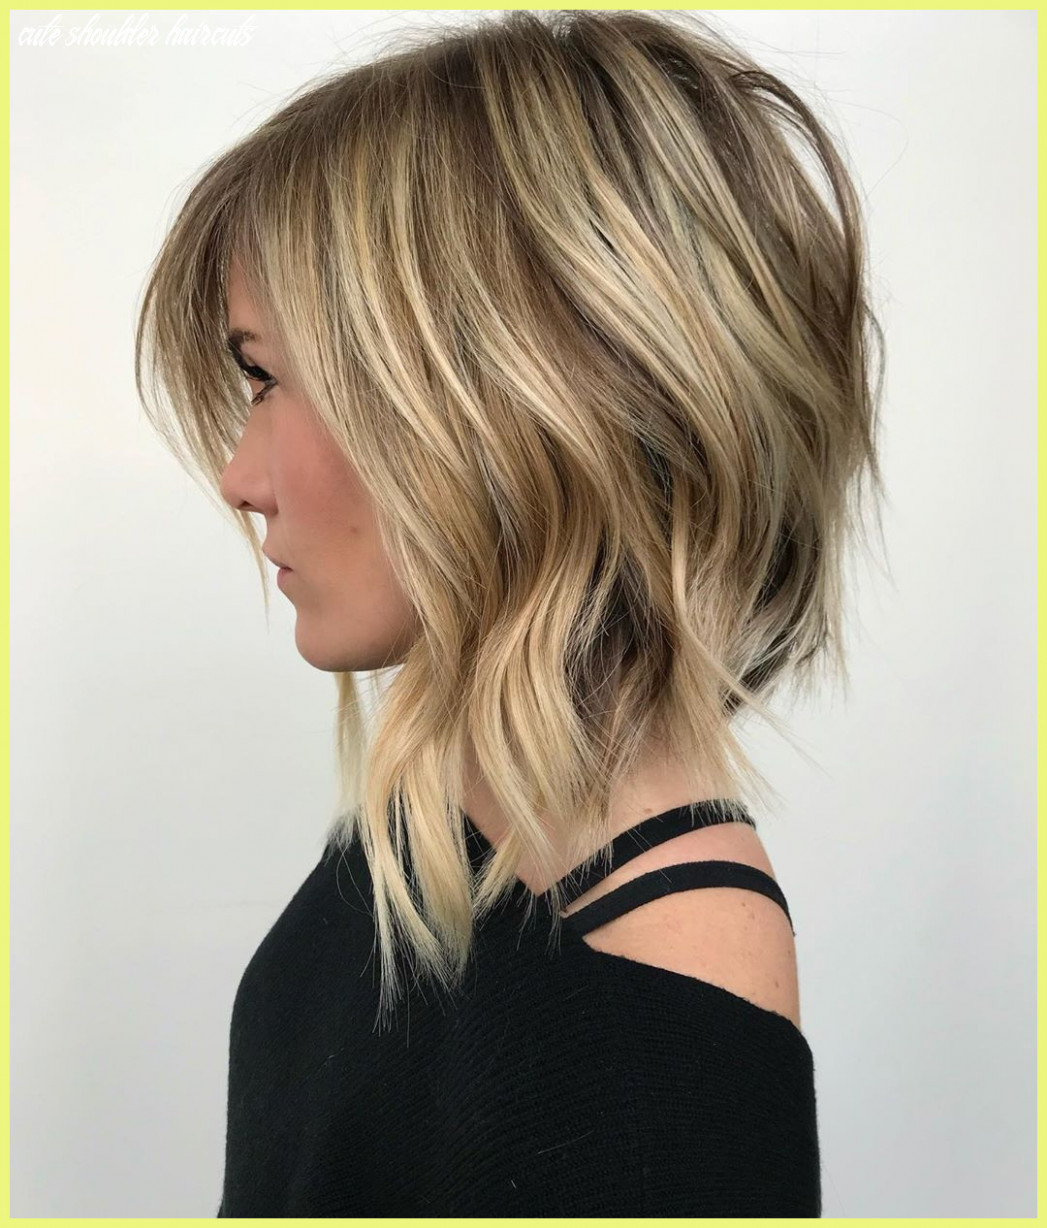 Med Length Haircuts 9 Ridiculously Cute Shoulder Length ...